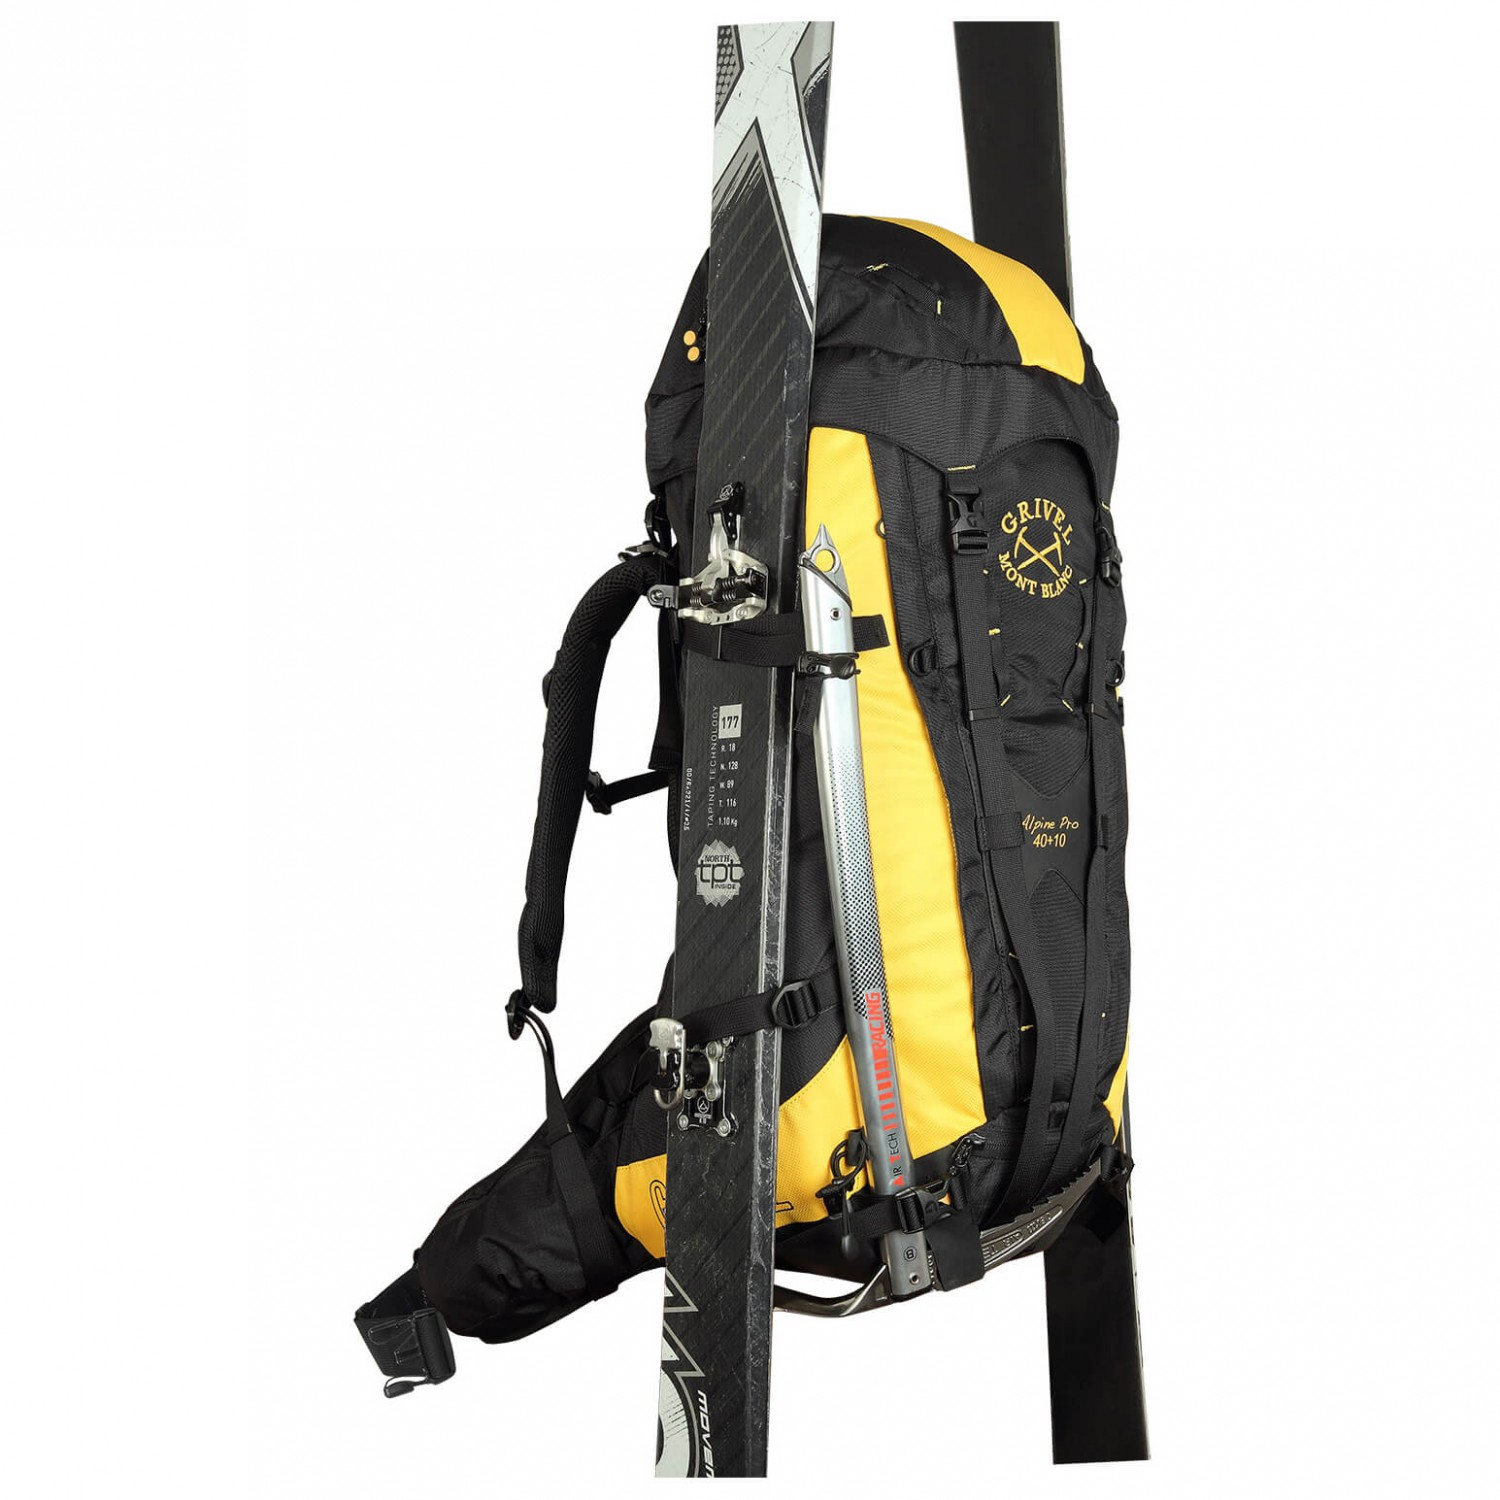 4426d477977246 Grivel Alpine Pro 40+10 - Climbing Backpack | Free UK Delivery ...